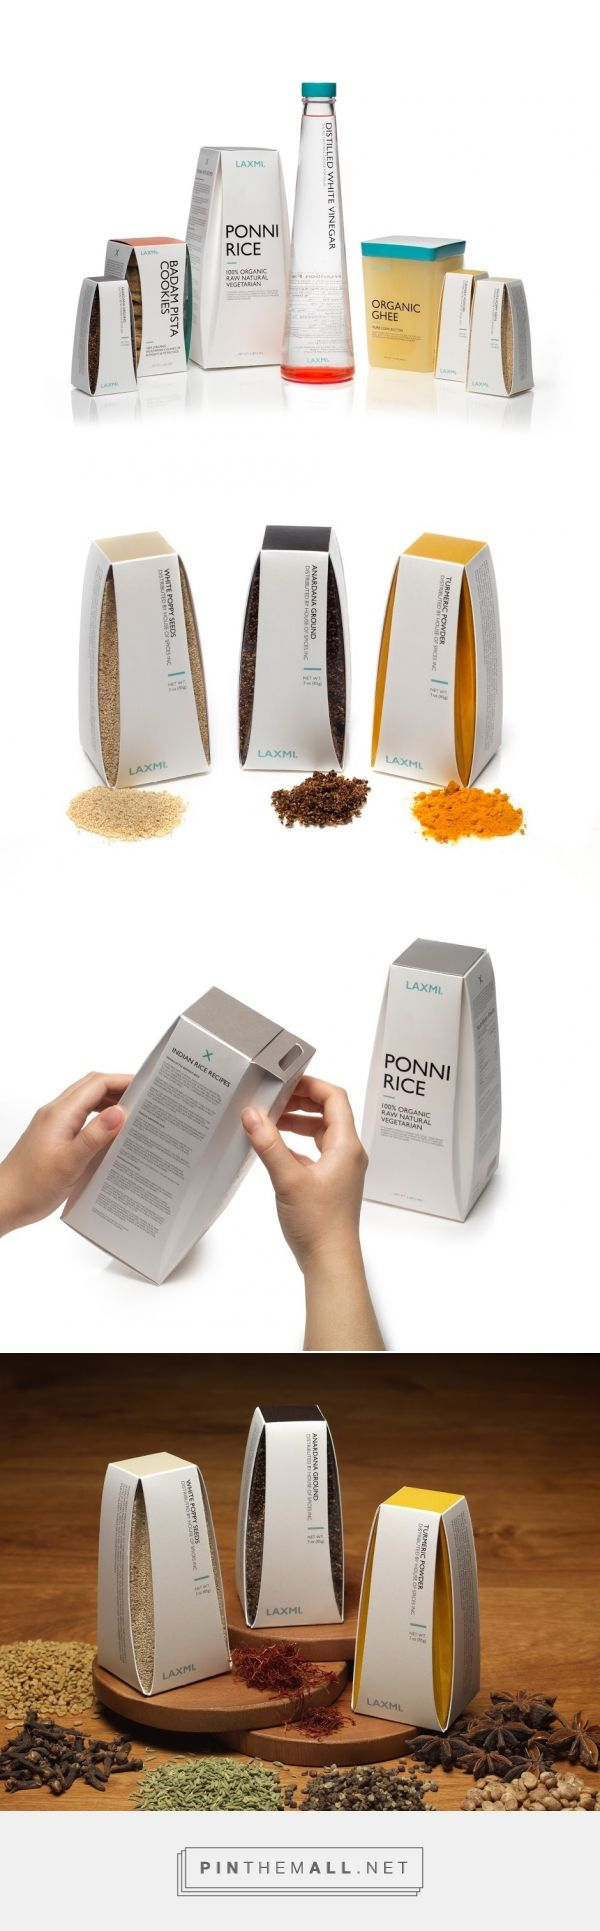 Laxmi Indian Food (Student Project)  - Packaging of the World - Creative Package Design Gallery - http://www.packagingoftheworld.com/2016/05/laxmi-indian-food-student-project.html